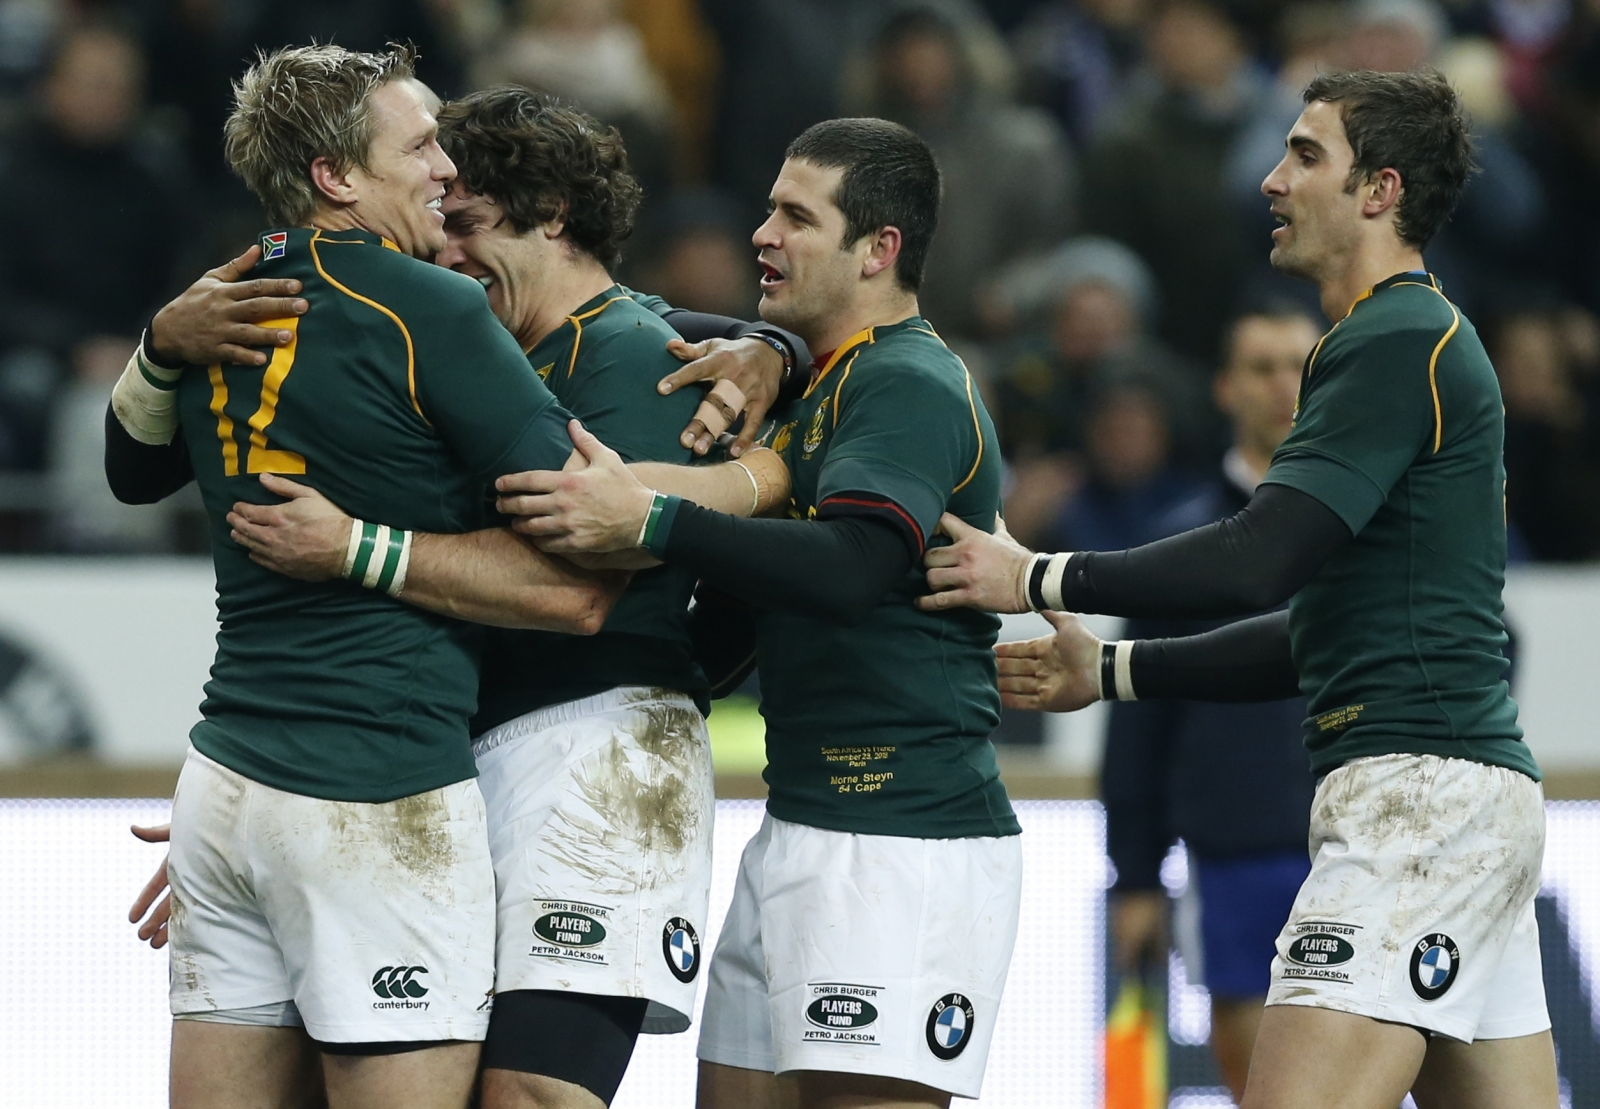 South Africa rugby